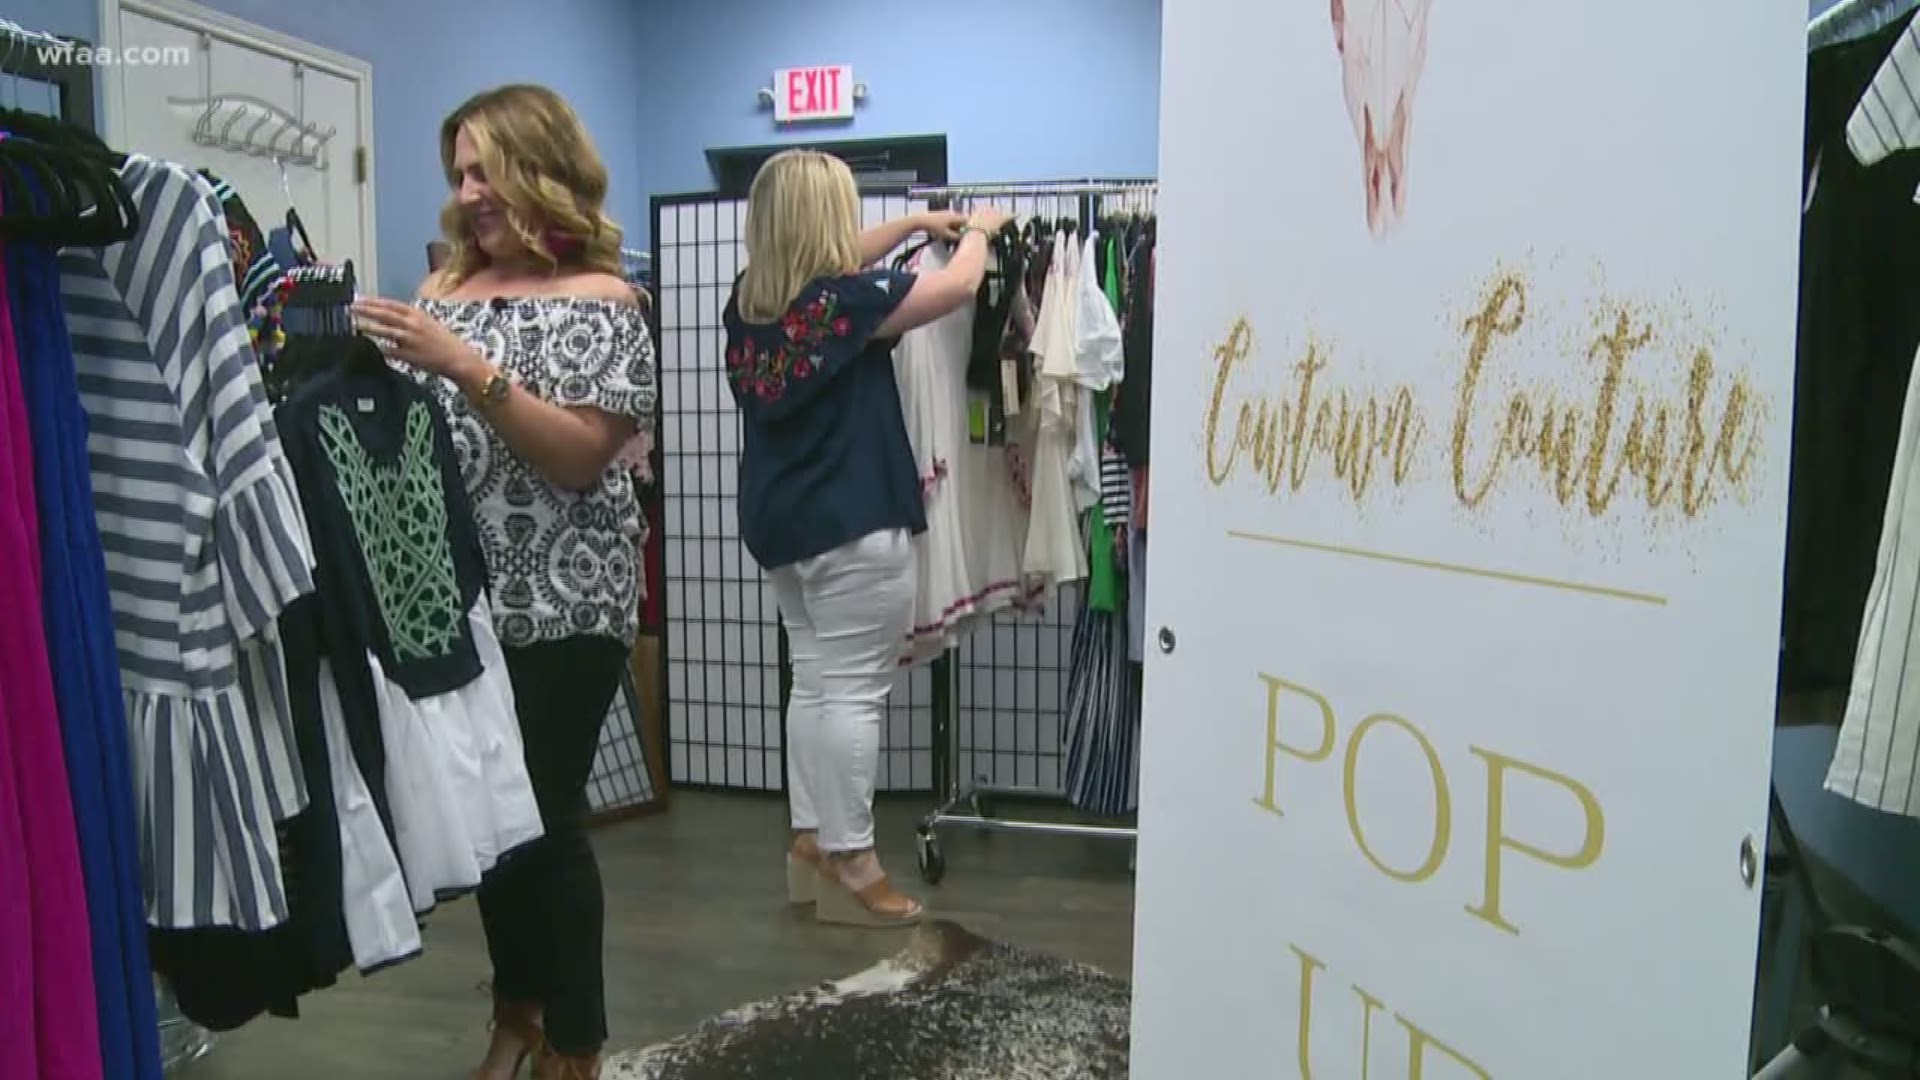 Fort Worth Boutique Finds Heartwarming Passion Through Fashion Wfaa Com